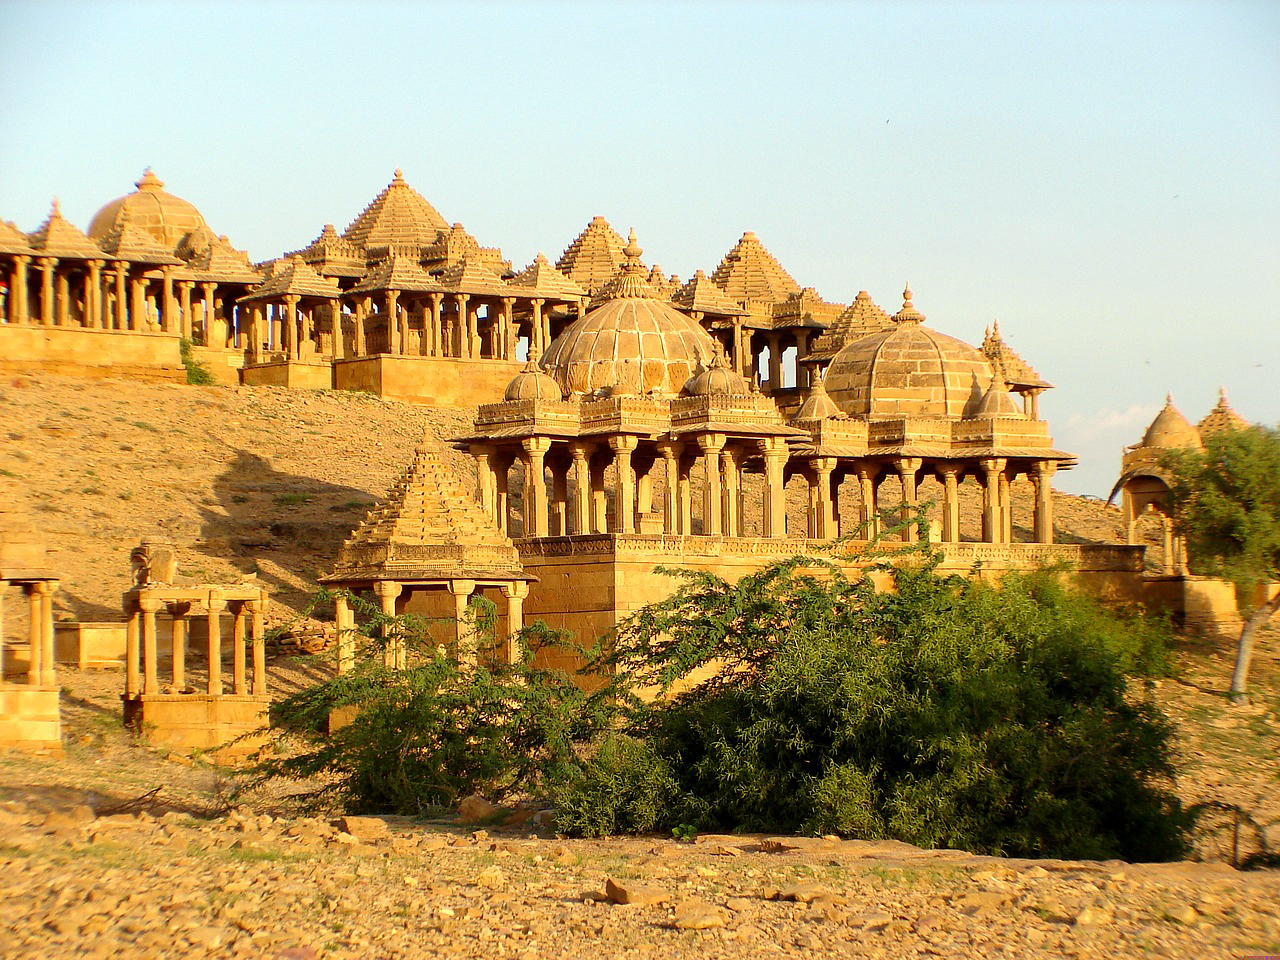 Fascinating yellow stone architecture of the golden city Jaisalmer